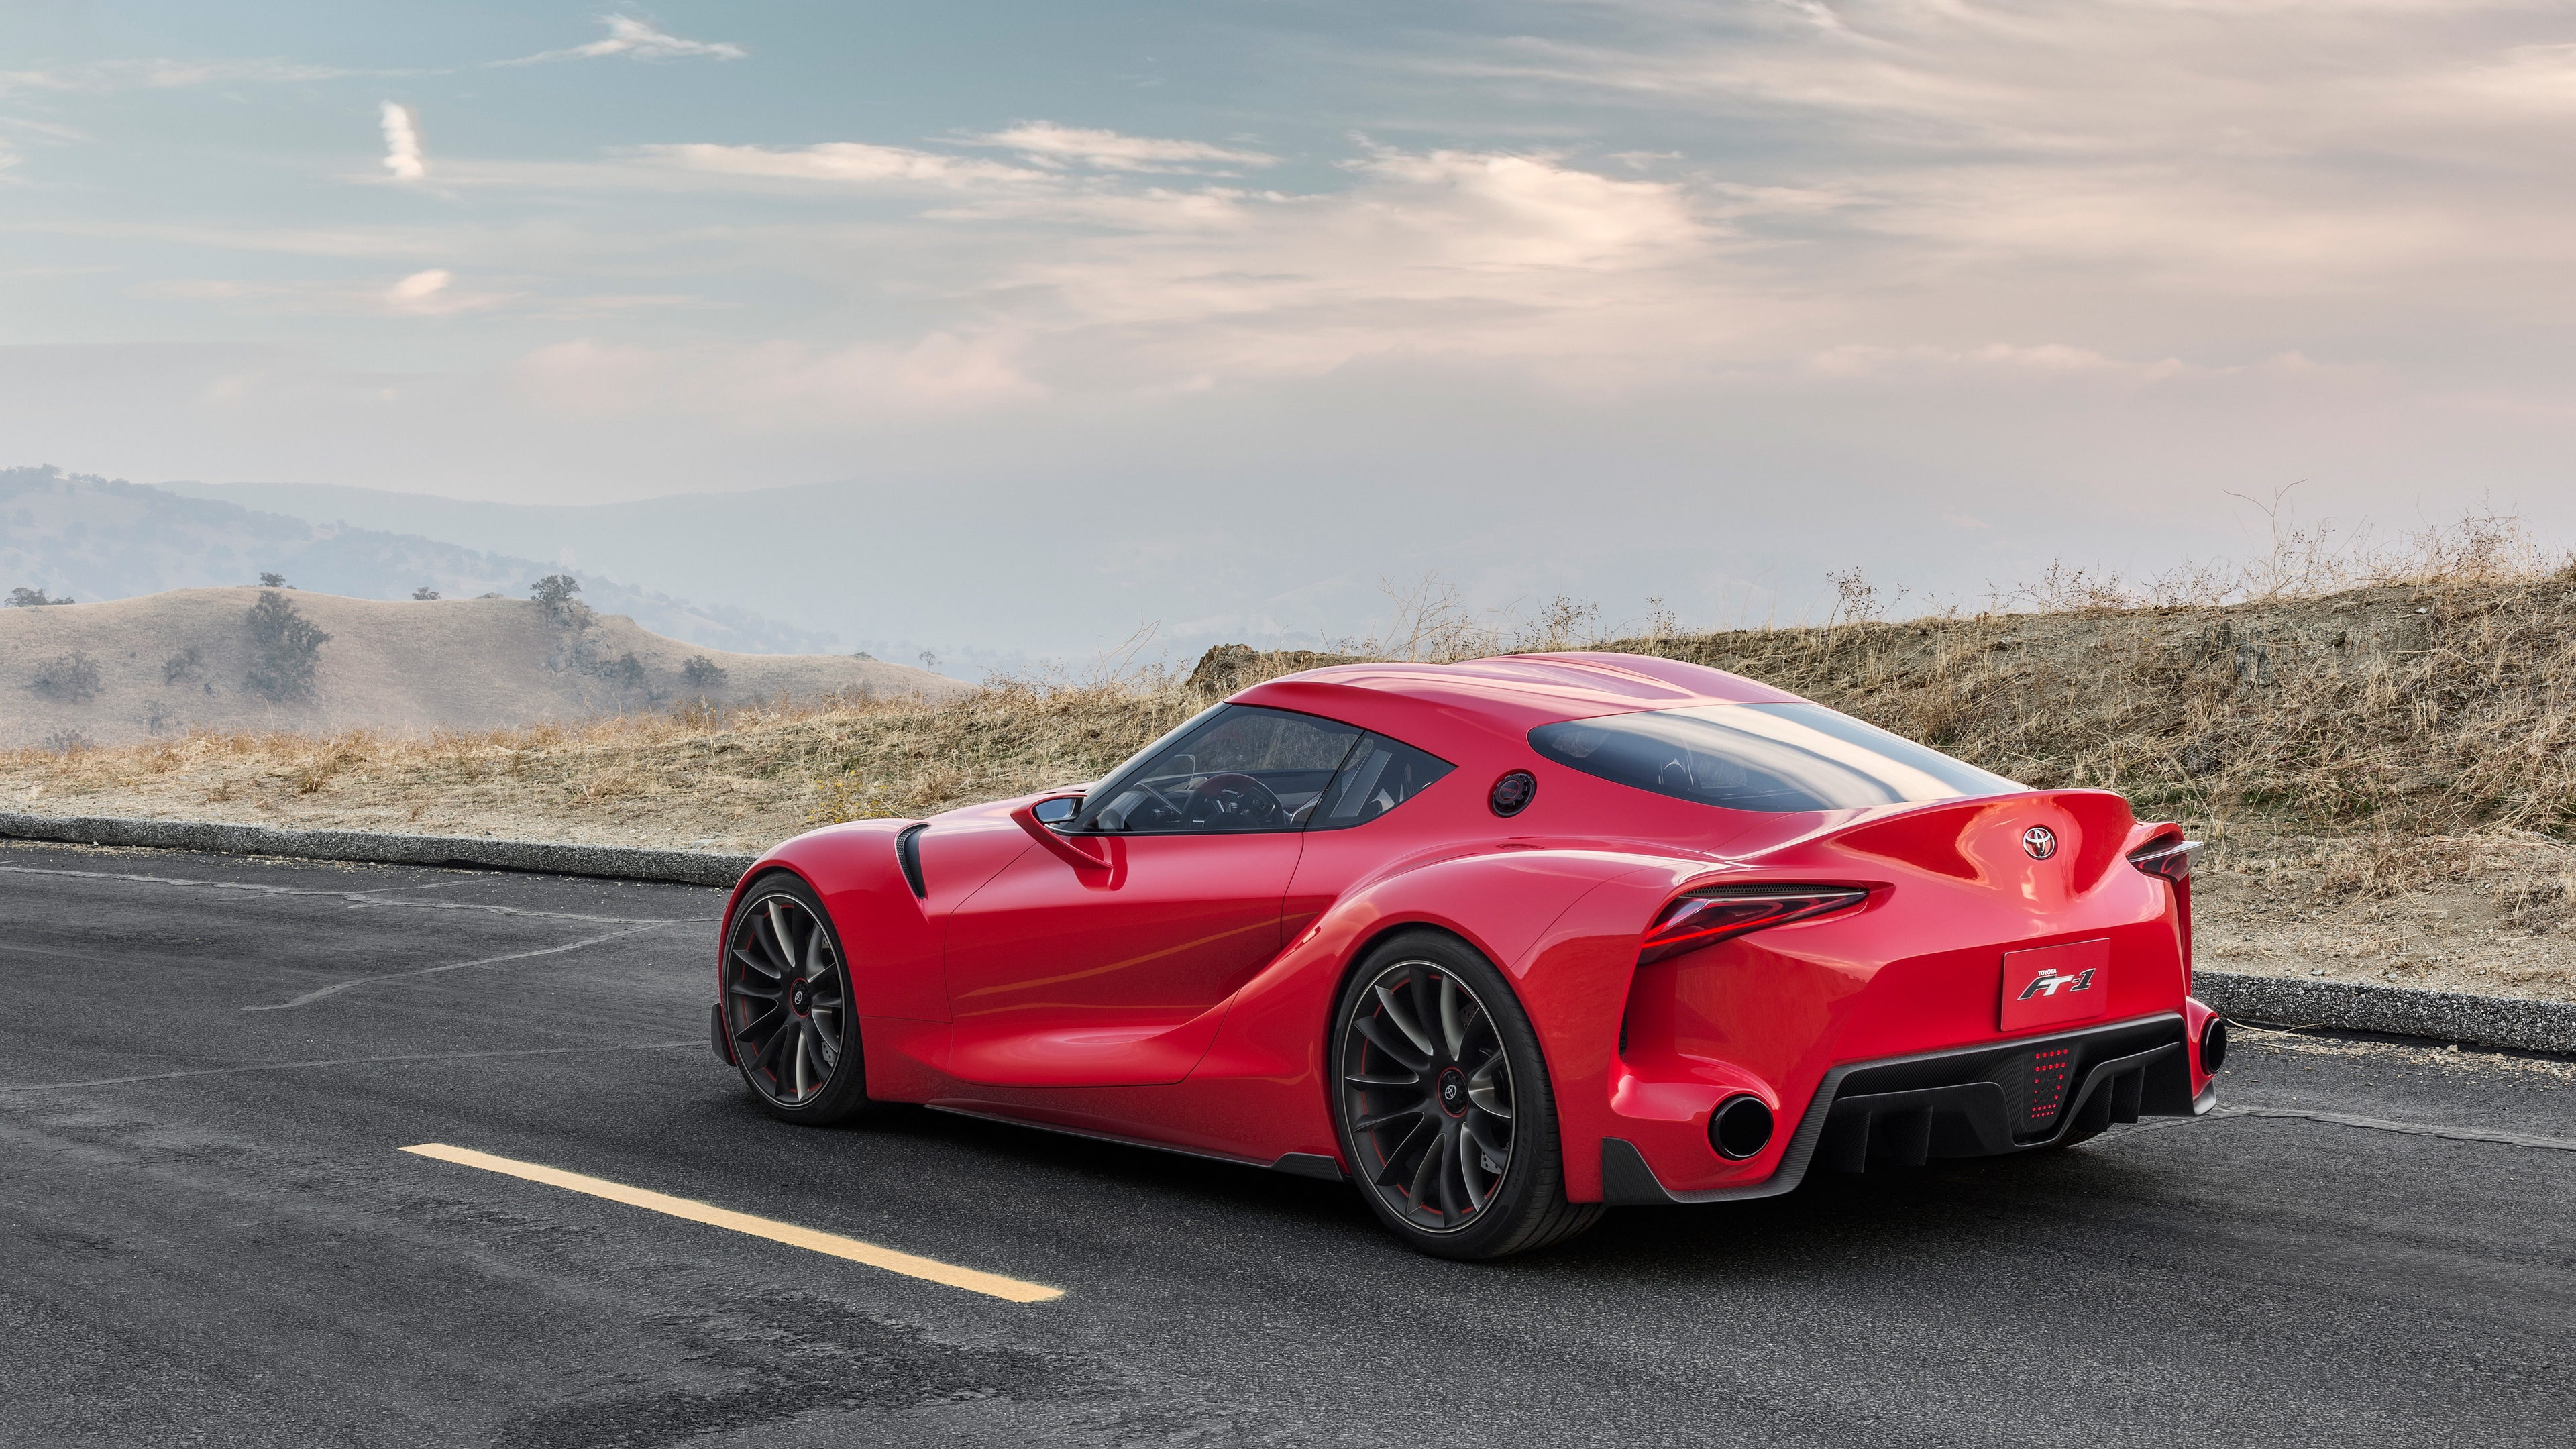 toyota ft 1 red machine side view 4k 1538935392 - toyota, ft-1, red, machine, side view 4k - Toyota, red, ft-1